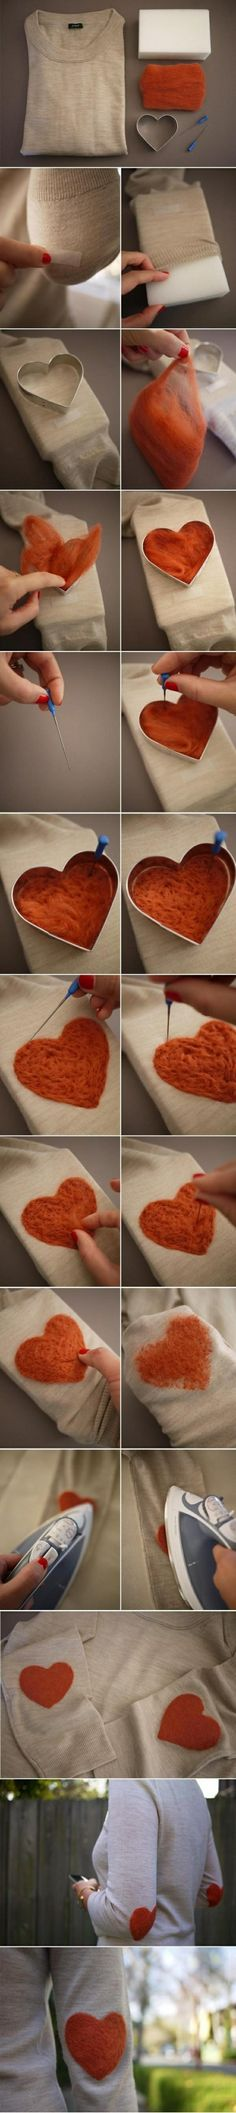 I'm going to do this this fall - however instead of by hand, using the feling machine or handfelting machine!